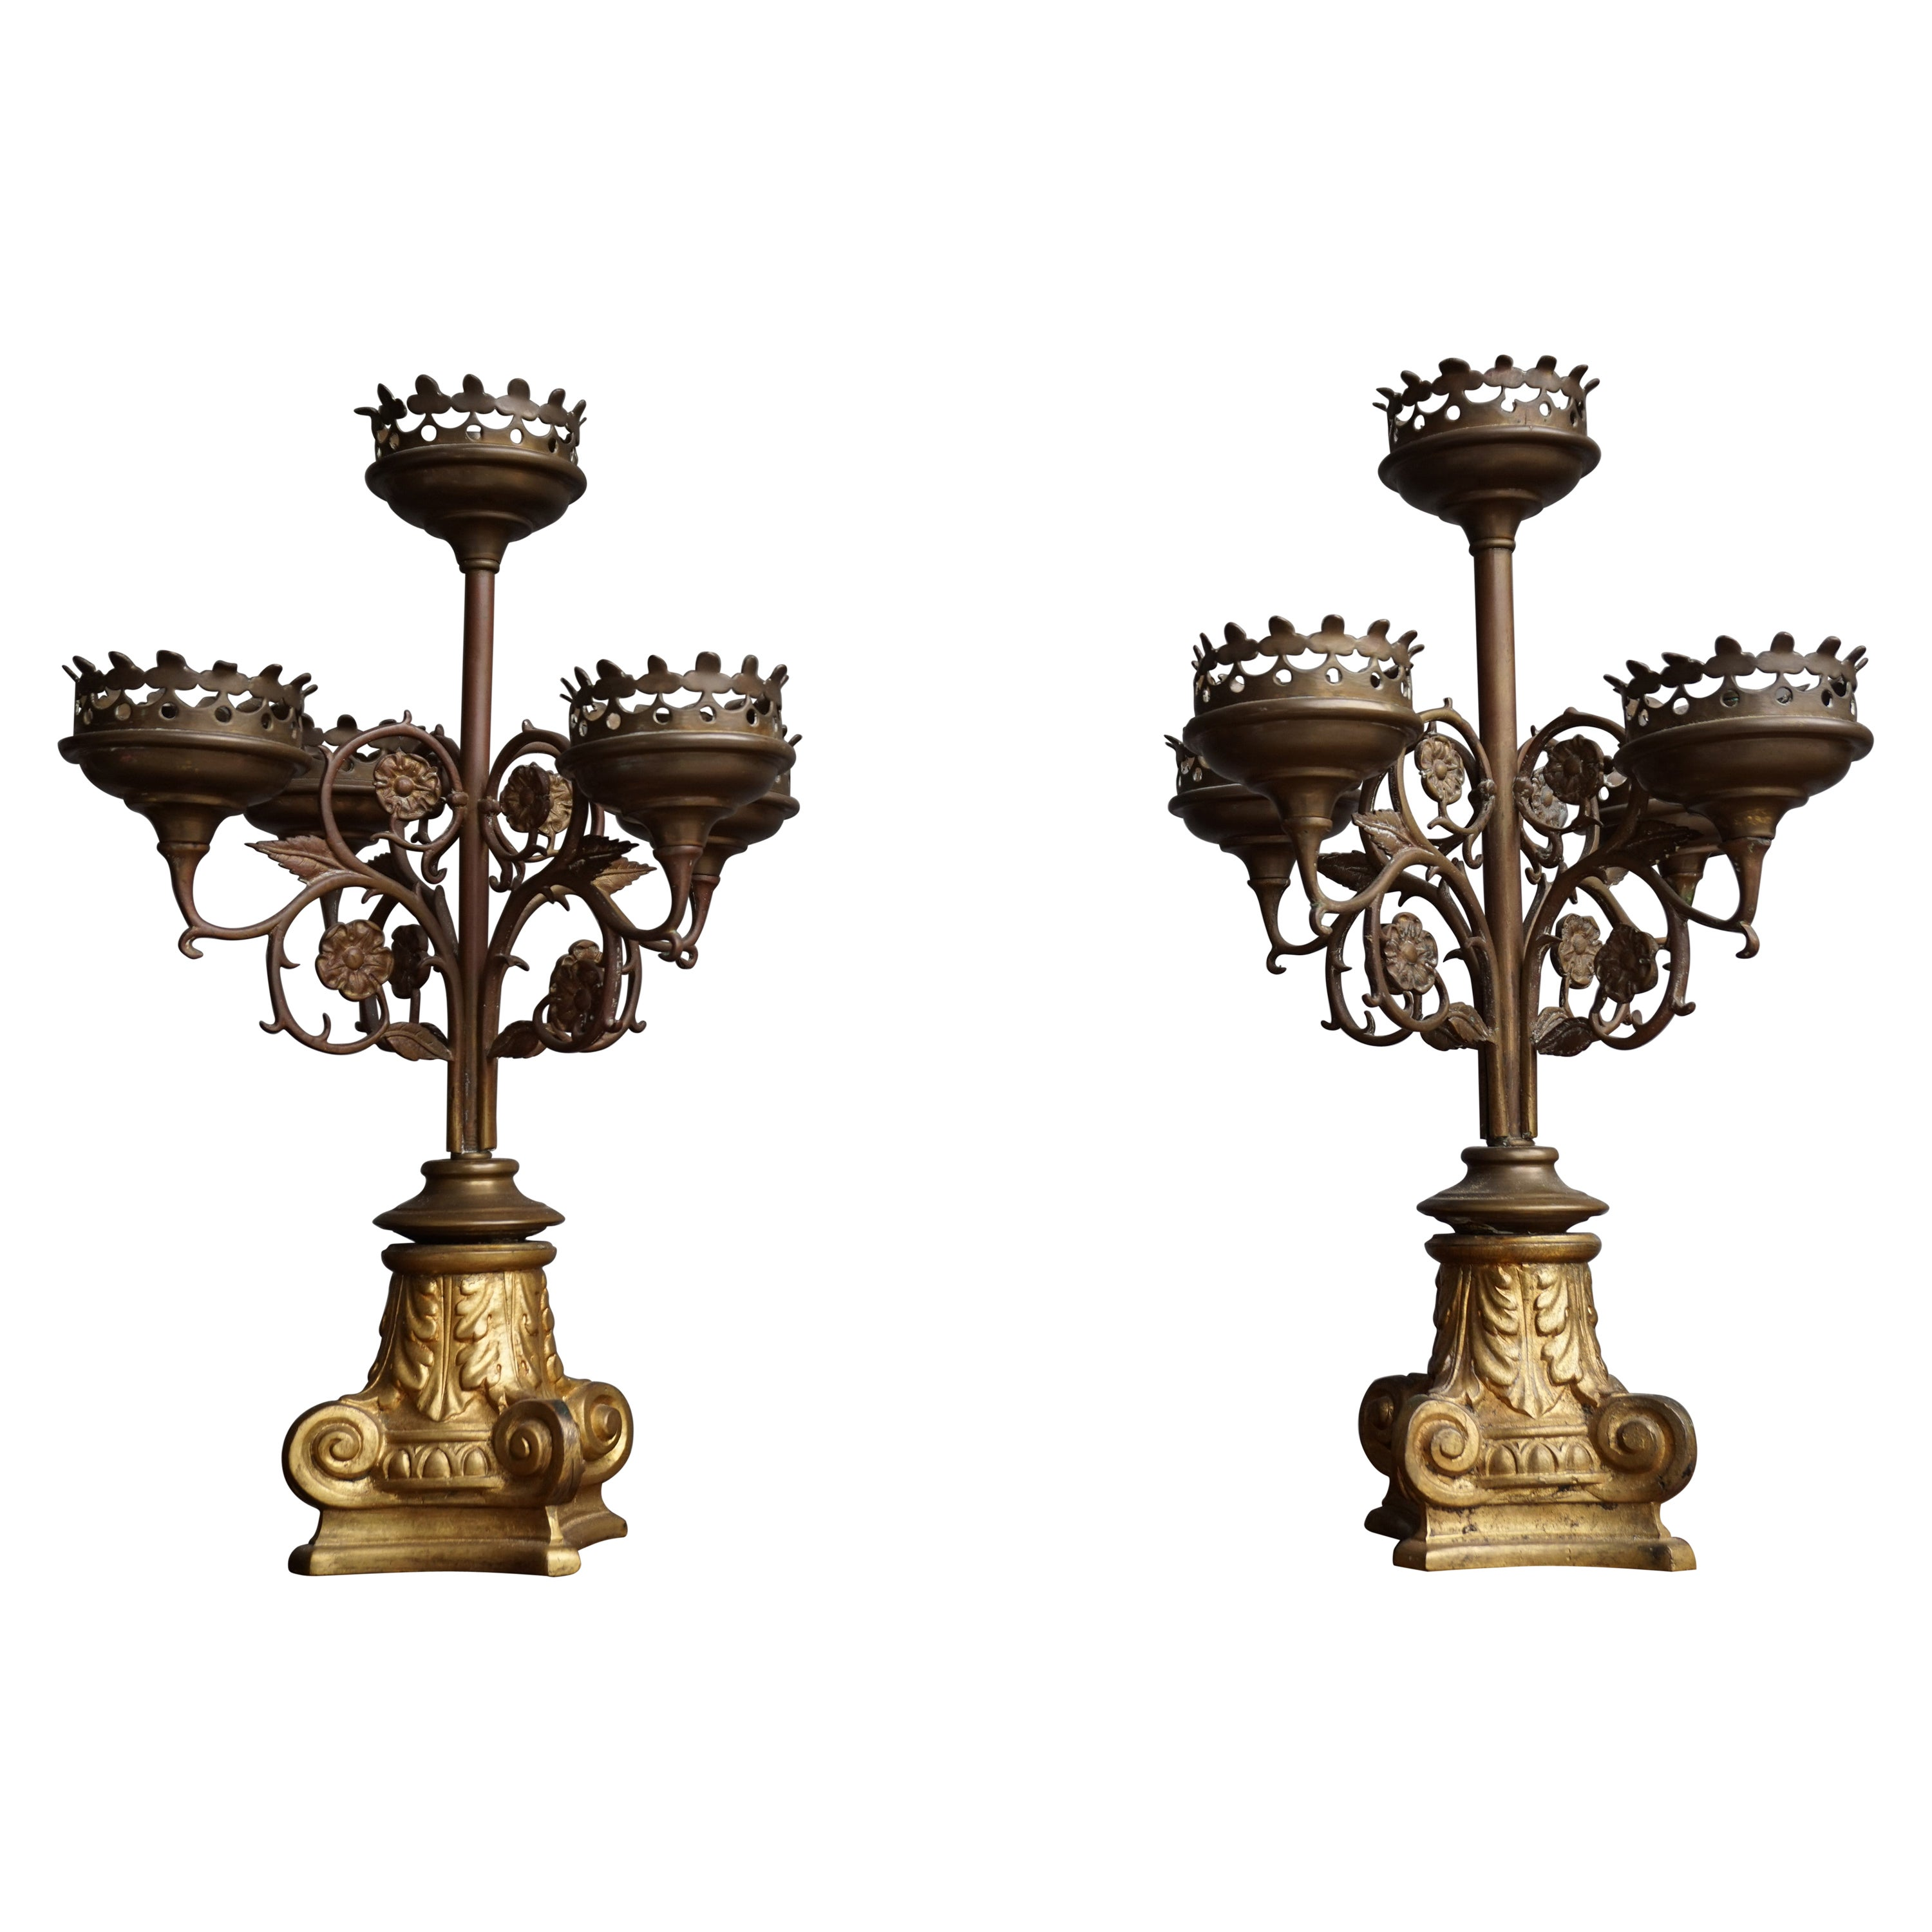 Antique Gothic Revival Pair of Bronze & Brass Table Candelabras / Candle Stands